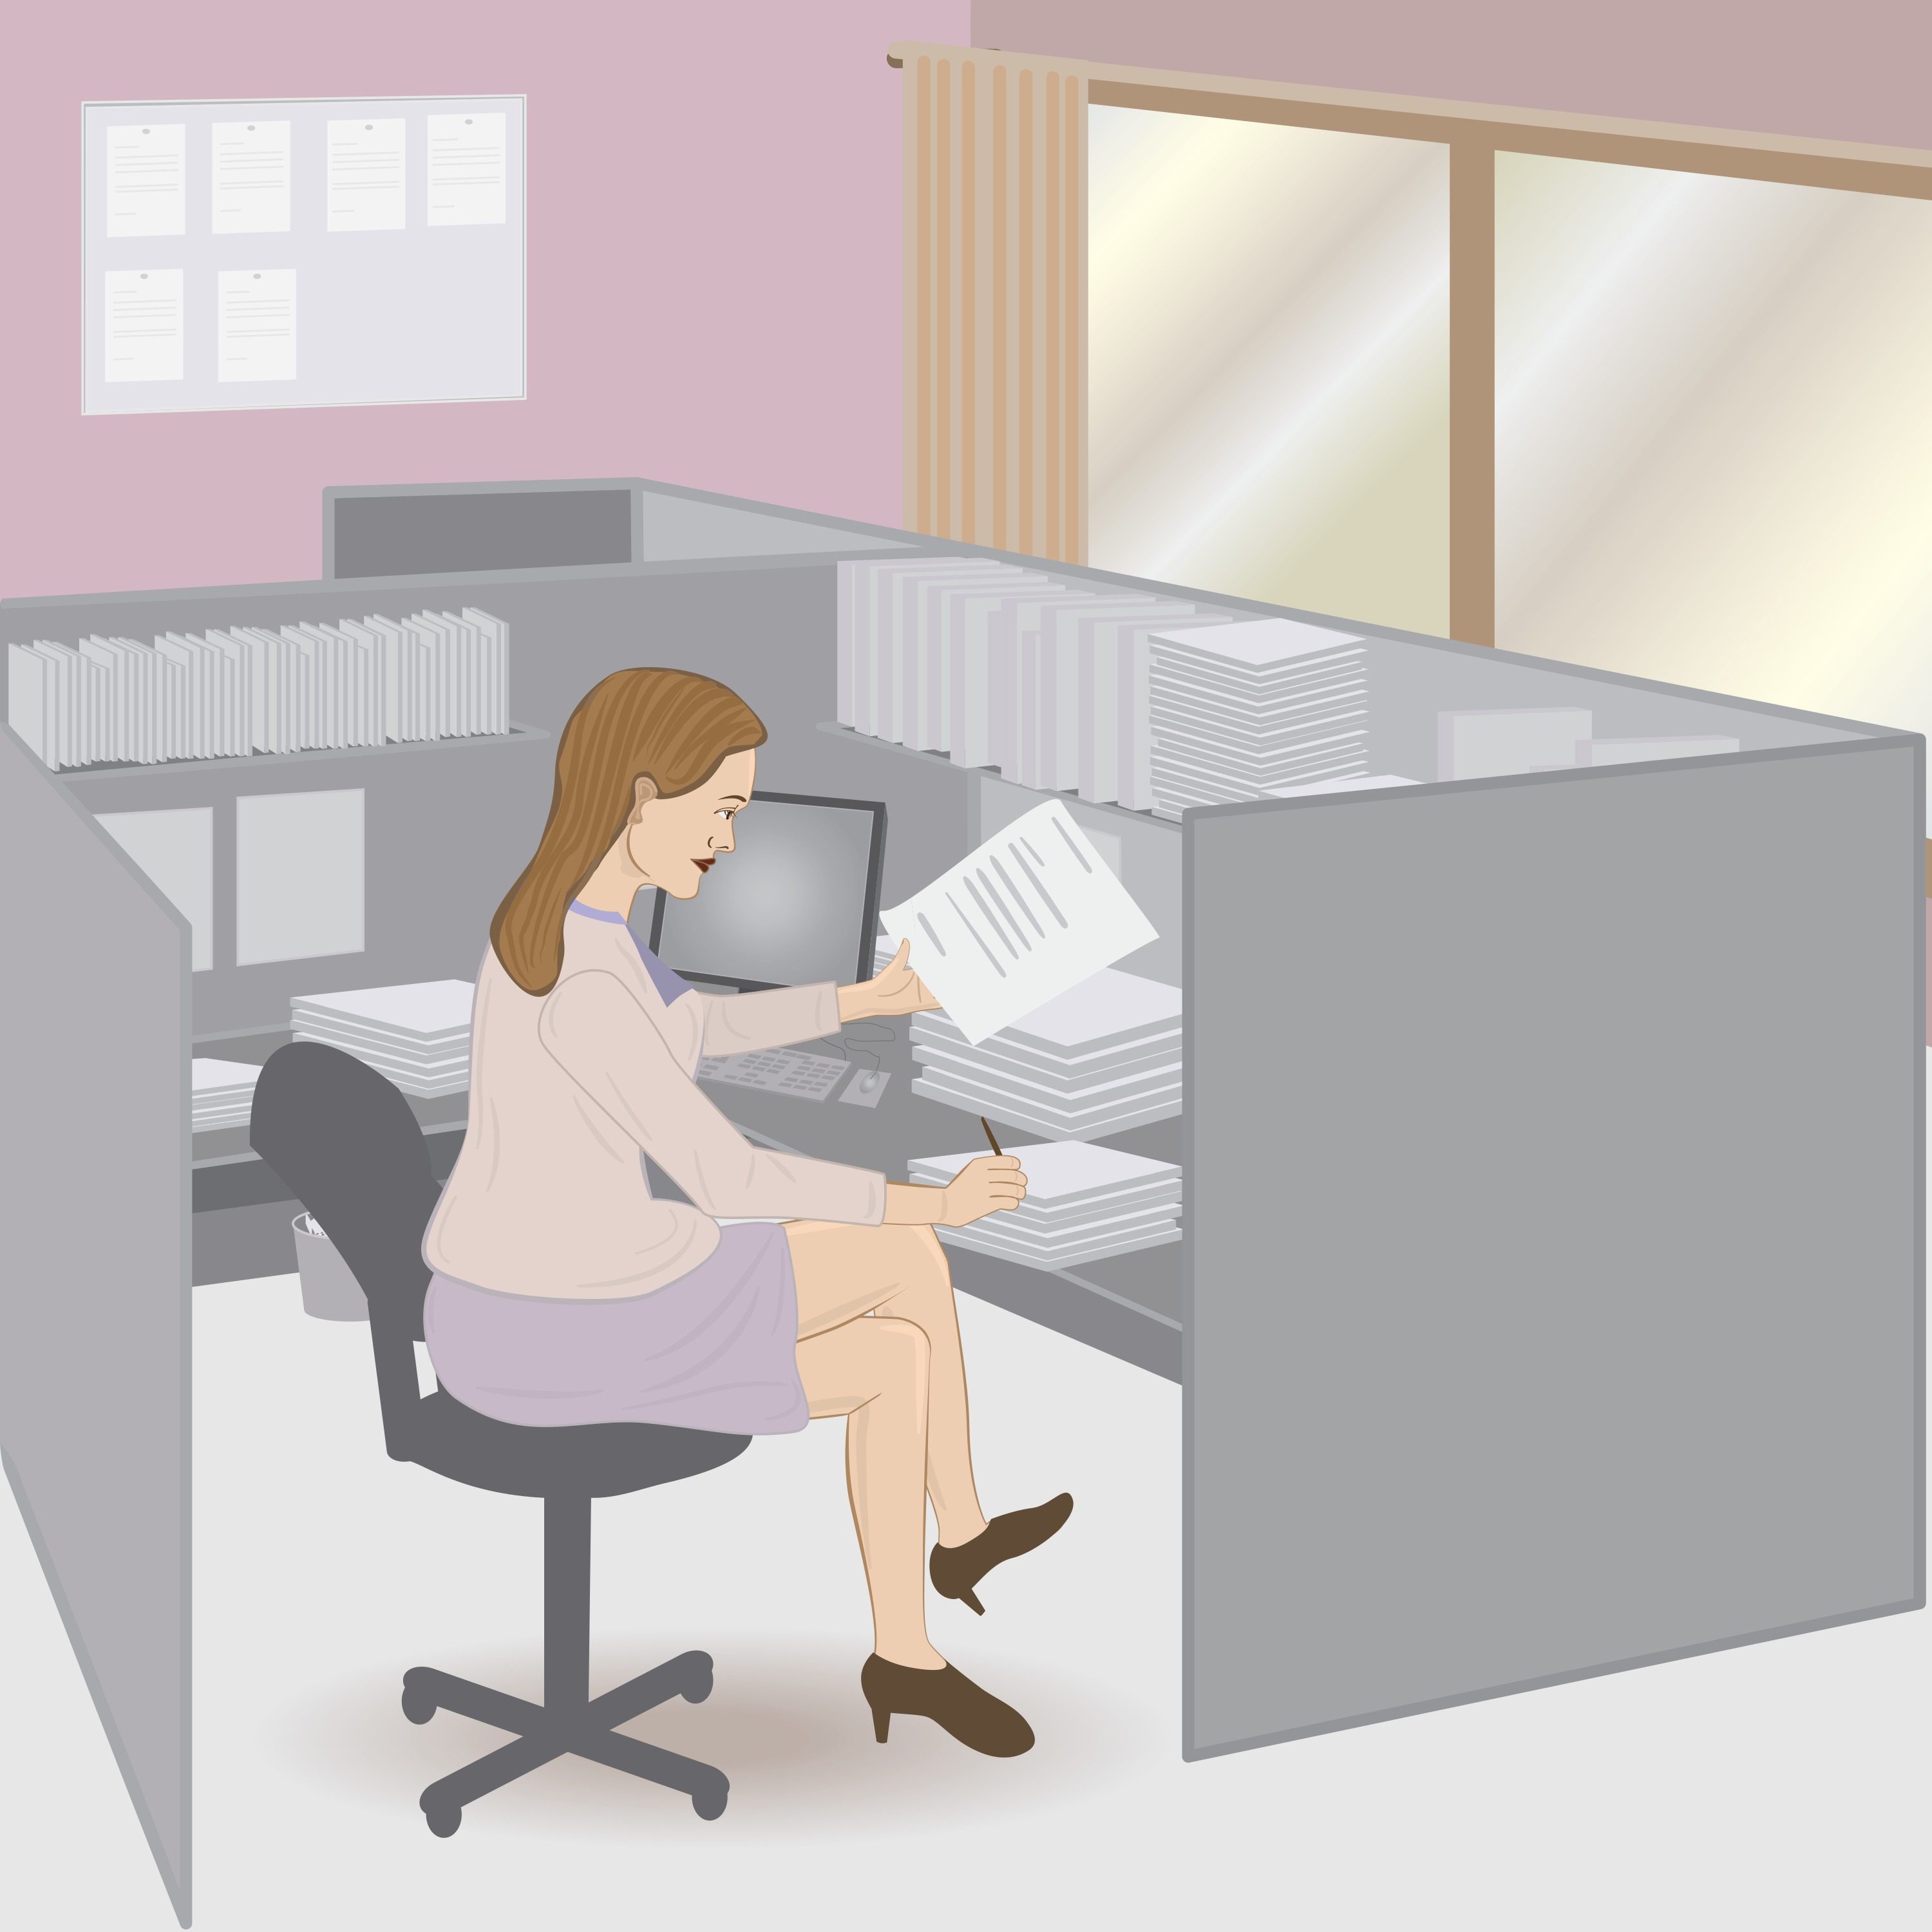 8 exercises you can do discreetly at your desk